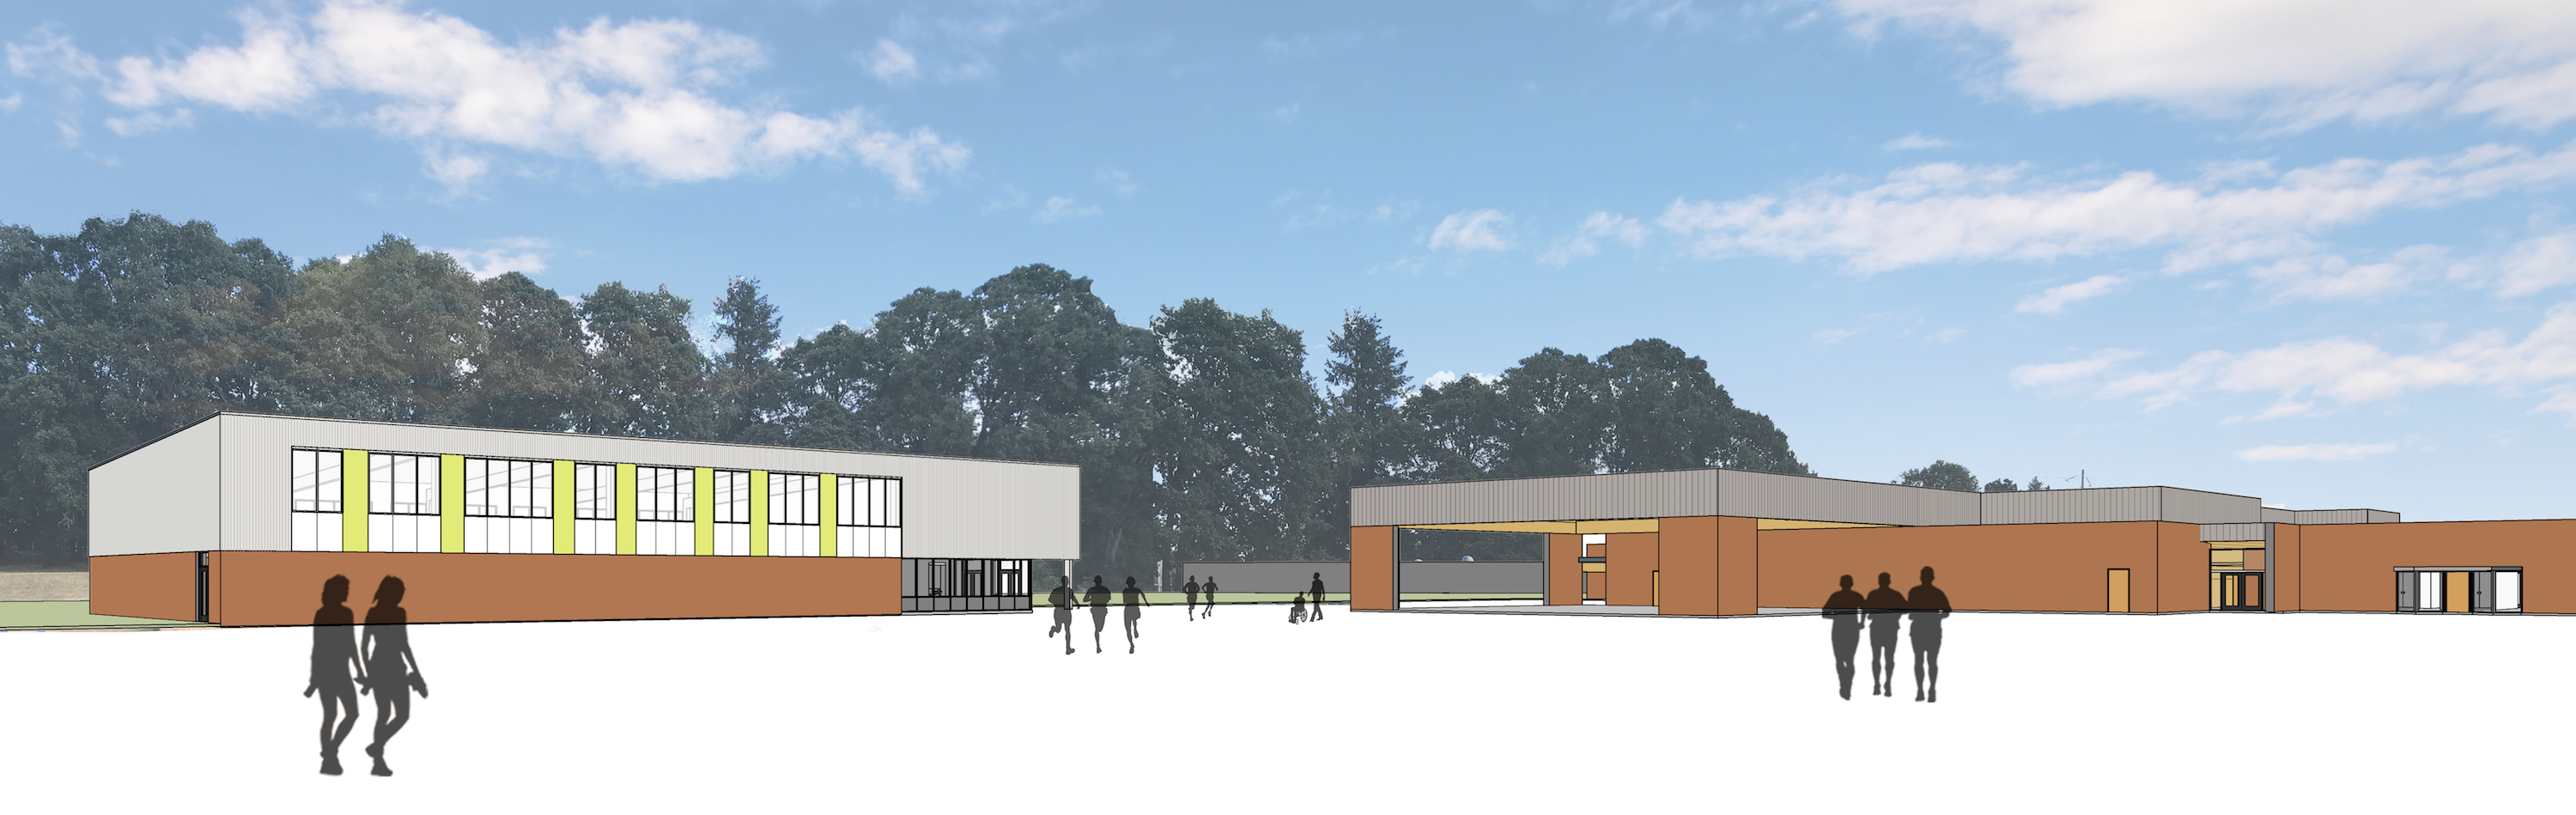 Rendering of proposed gym at Eastwood